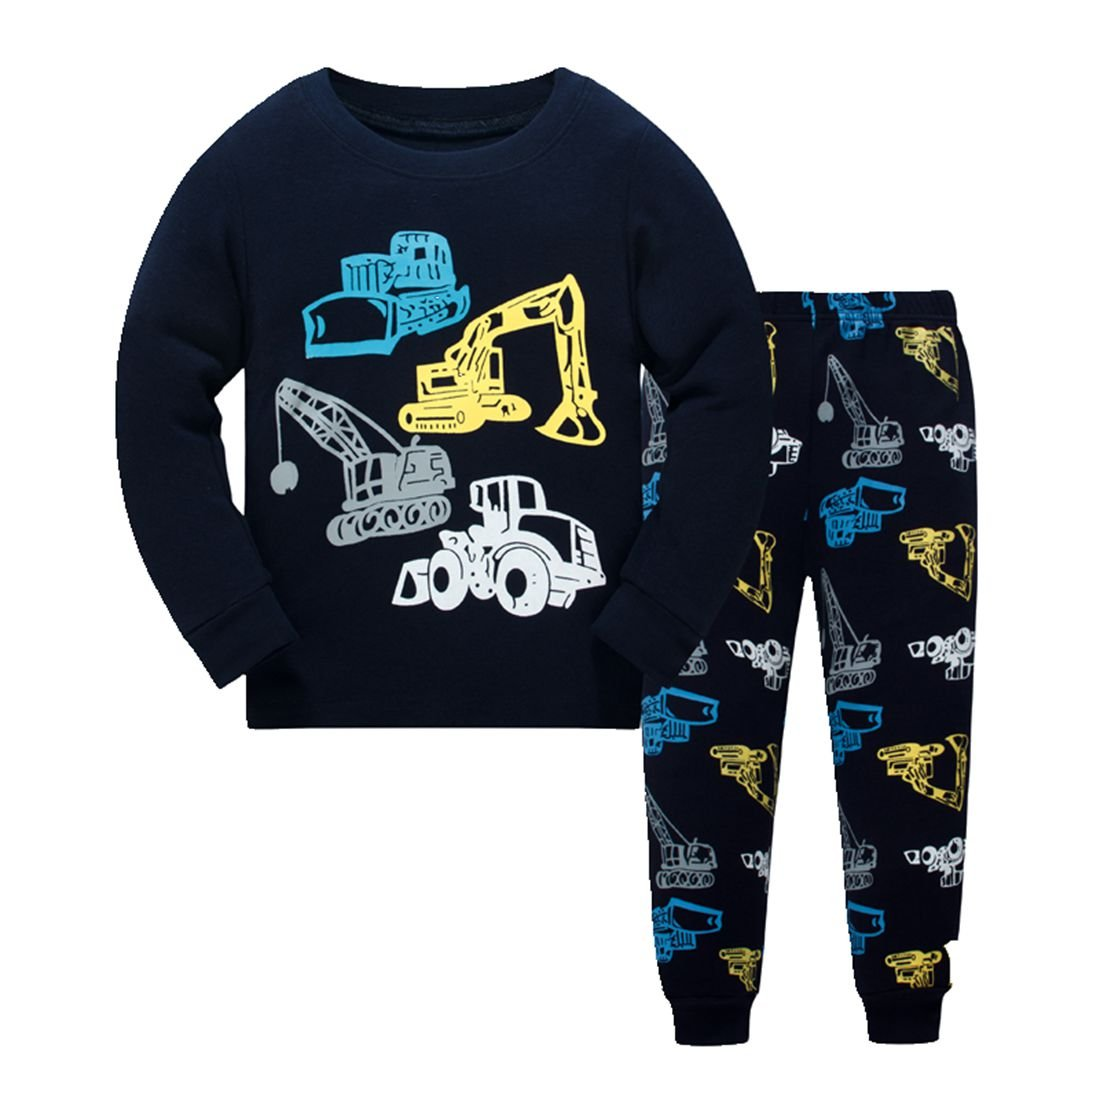 Boys Pajamas Cosy Long Sleeves Toddler Clothes Crane Kids Pjs Sleepwear 2 Piece Yzjcafriz